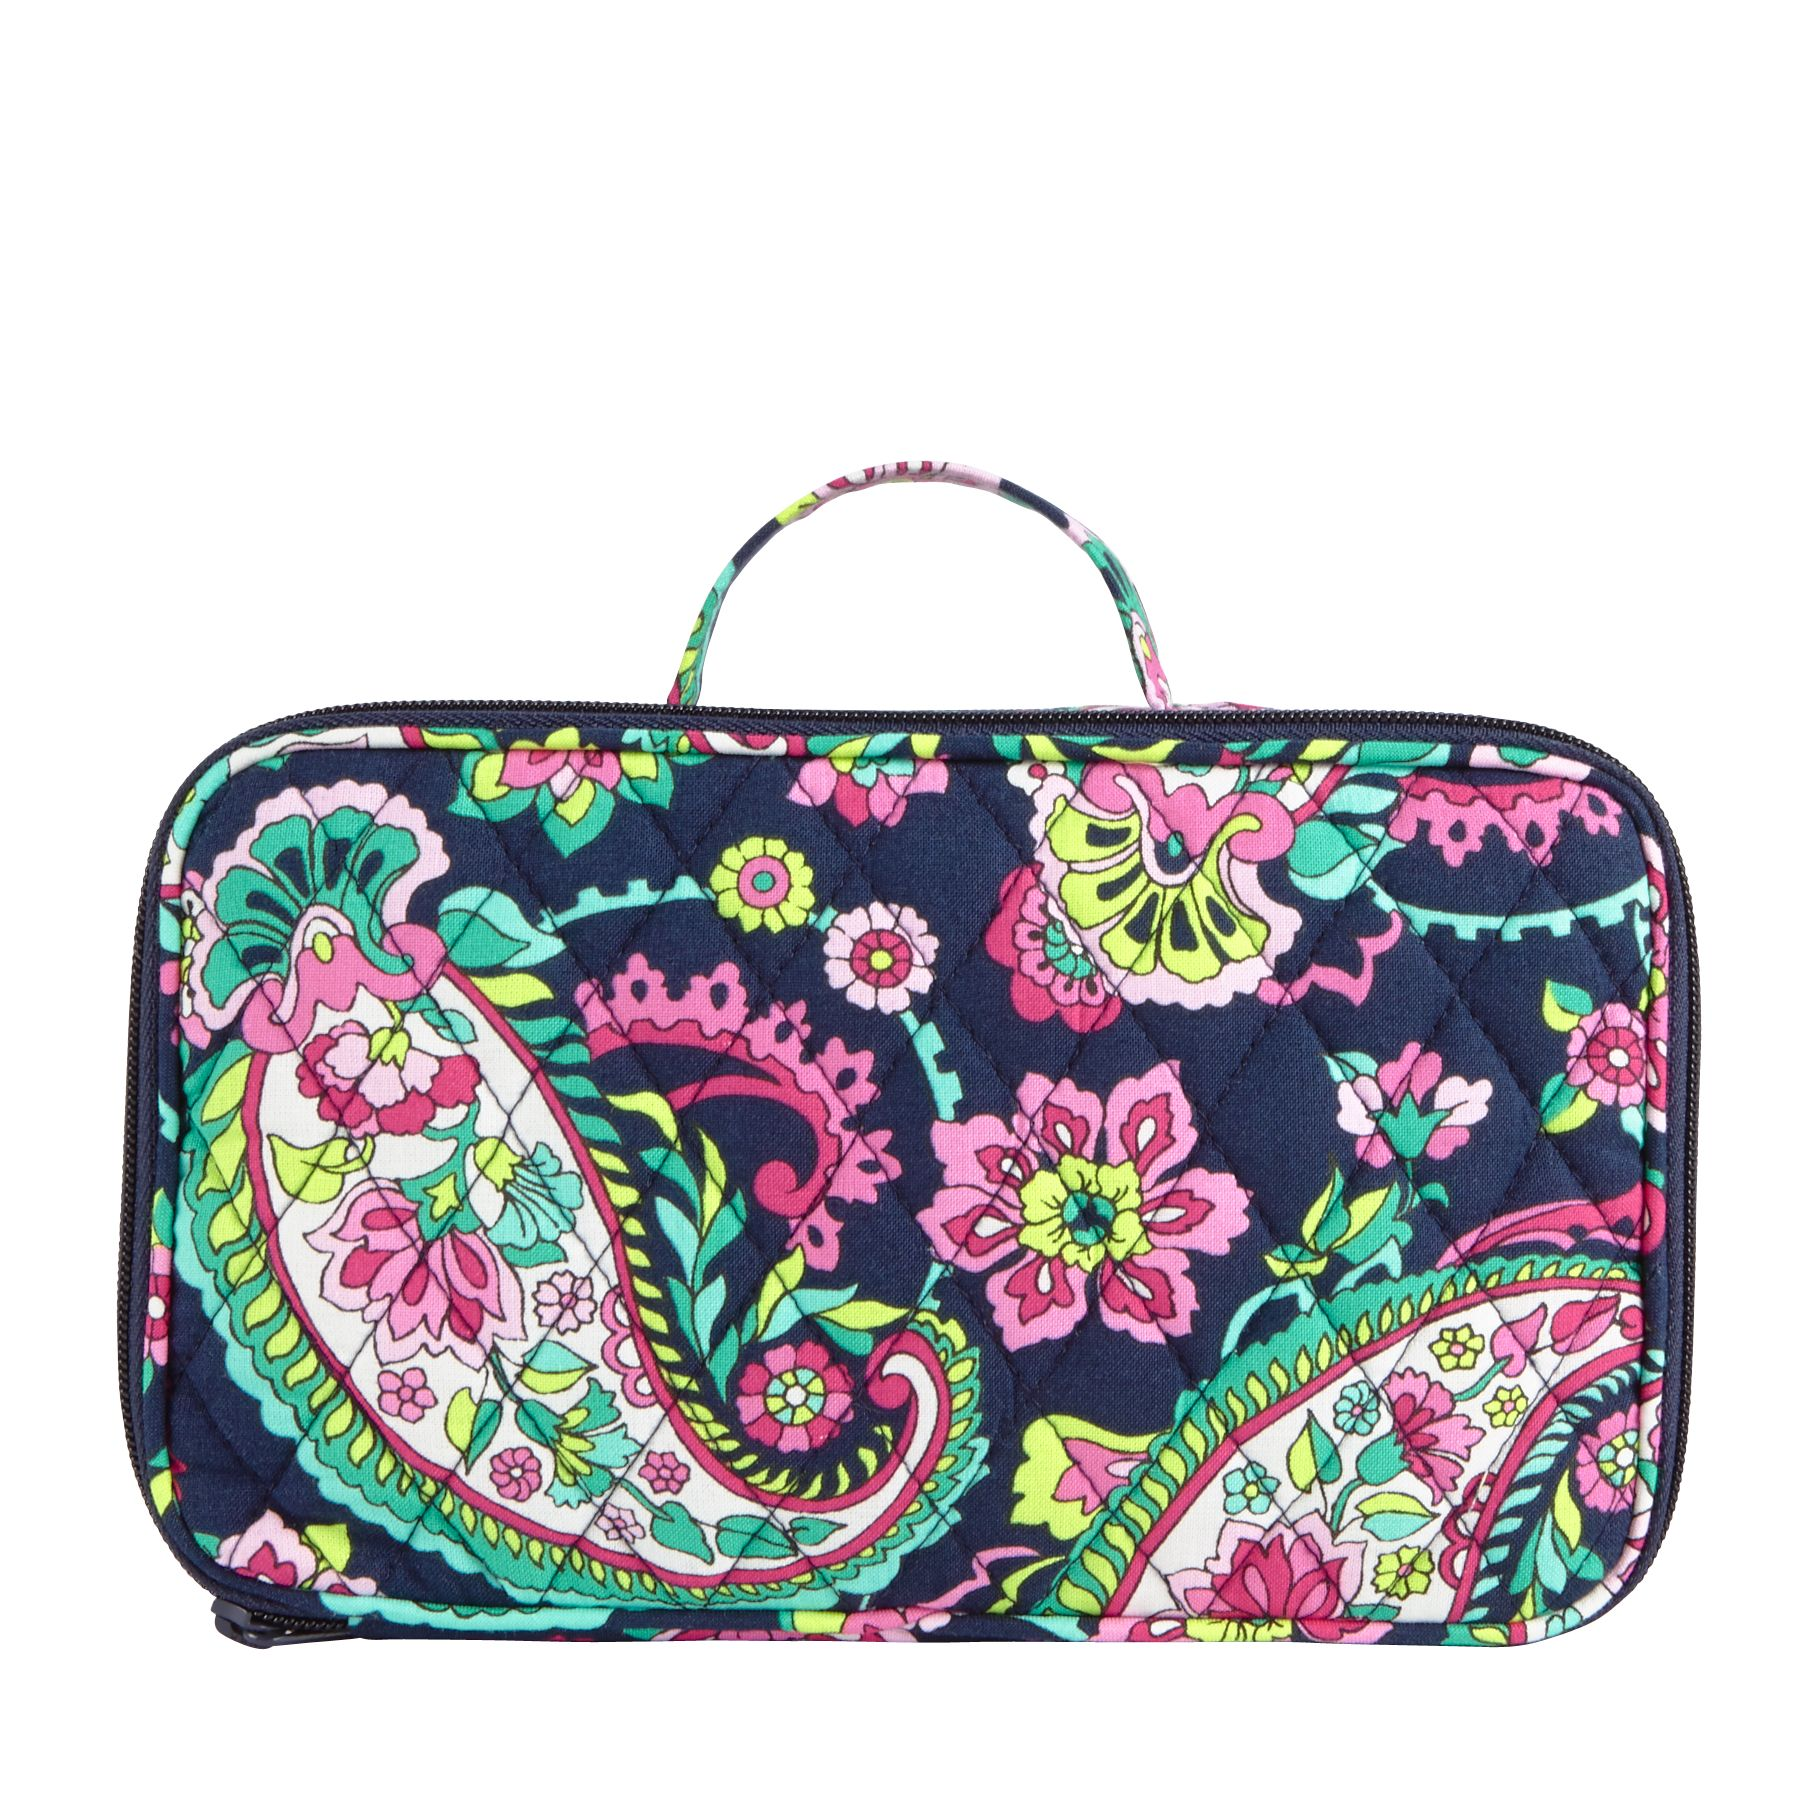 Details about Vera Bradley Blush u0026 Brush Makeup Cosmetic Case